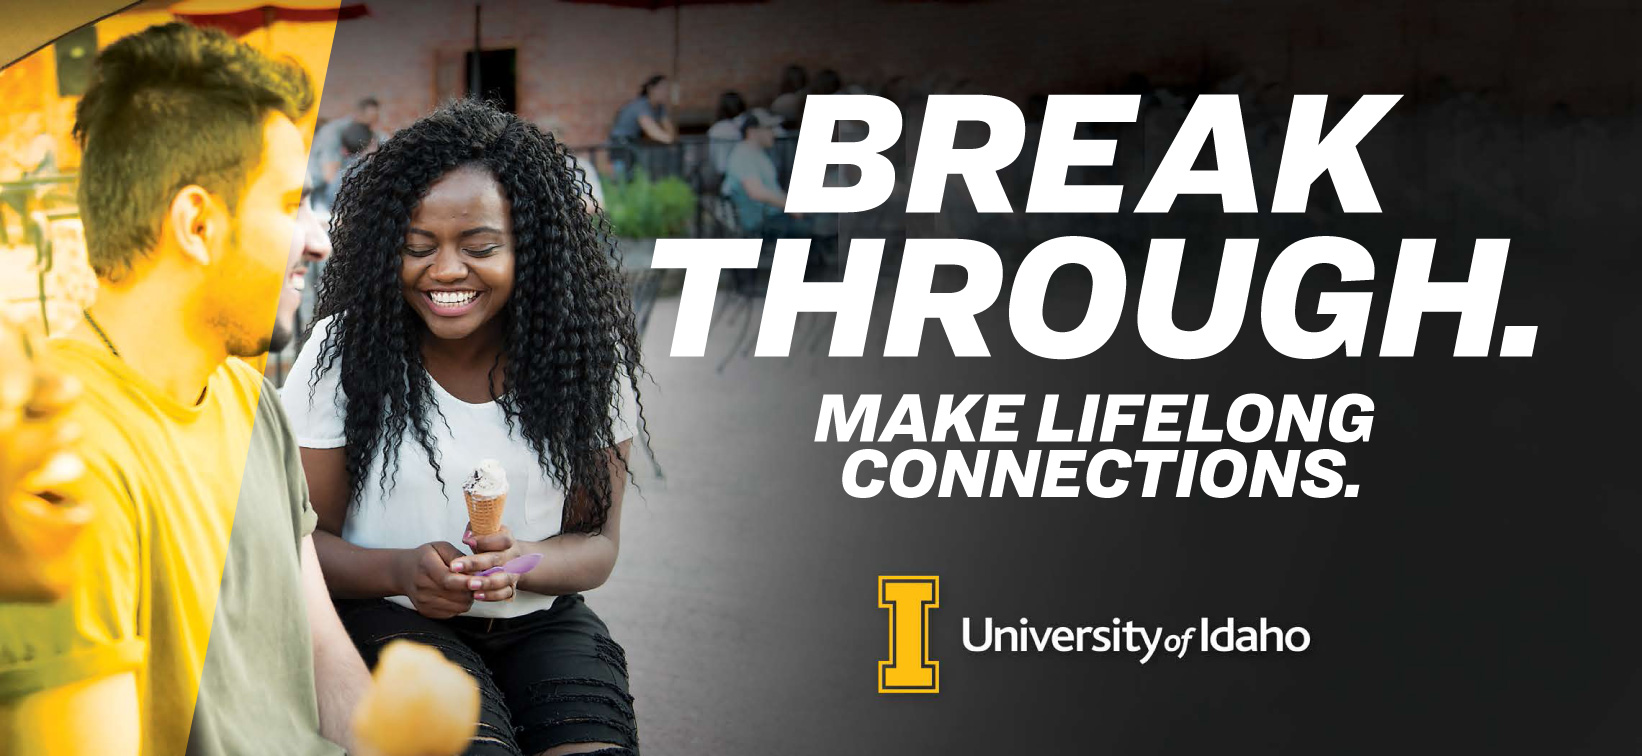 Break through. Make lifelong connections. University of Idaho.